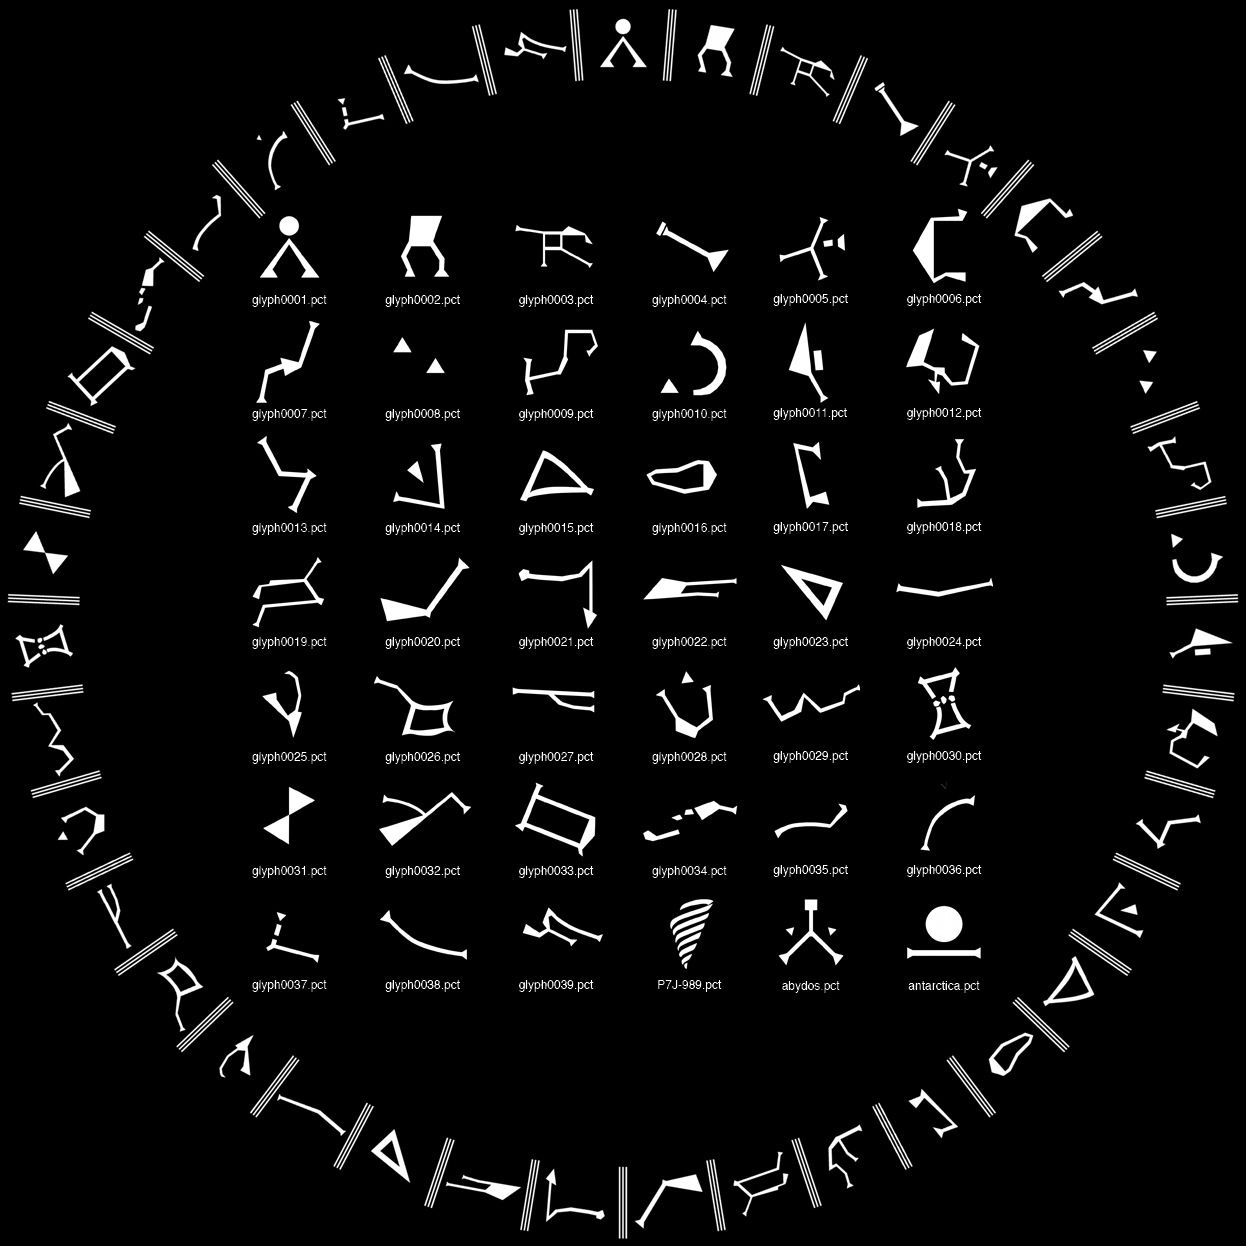 Thought this was cool it shows the symbols that are on the earth thought this was cool it shows the symbols that are on the earth stargate buycottarizona